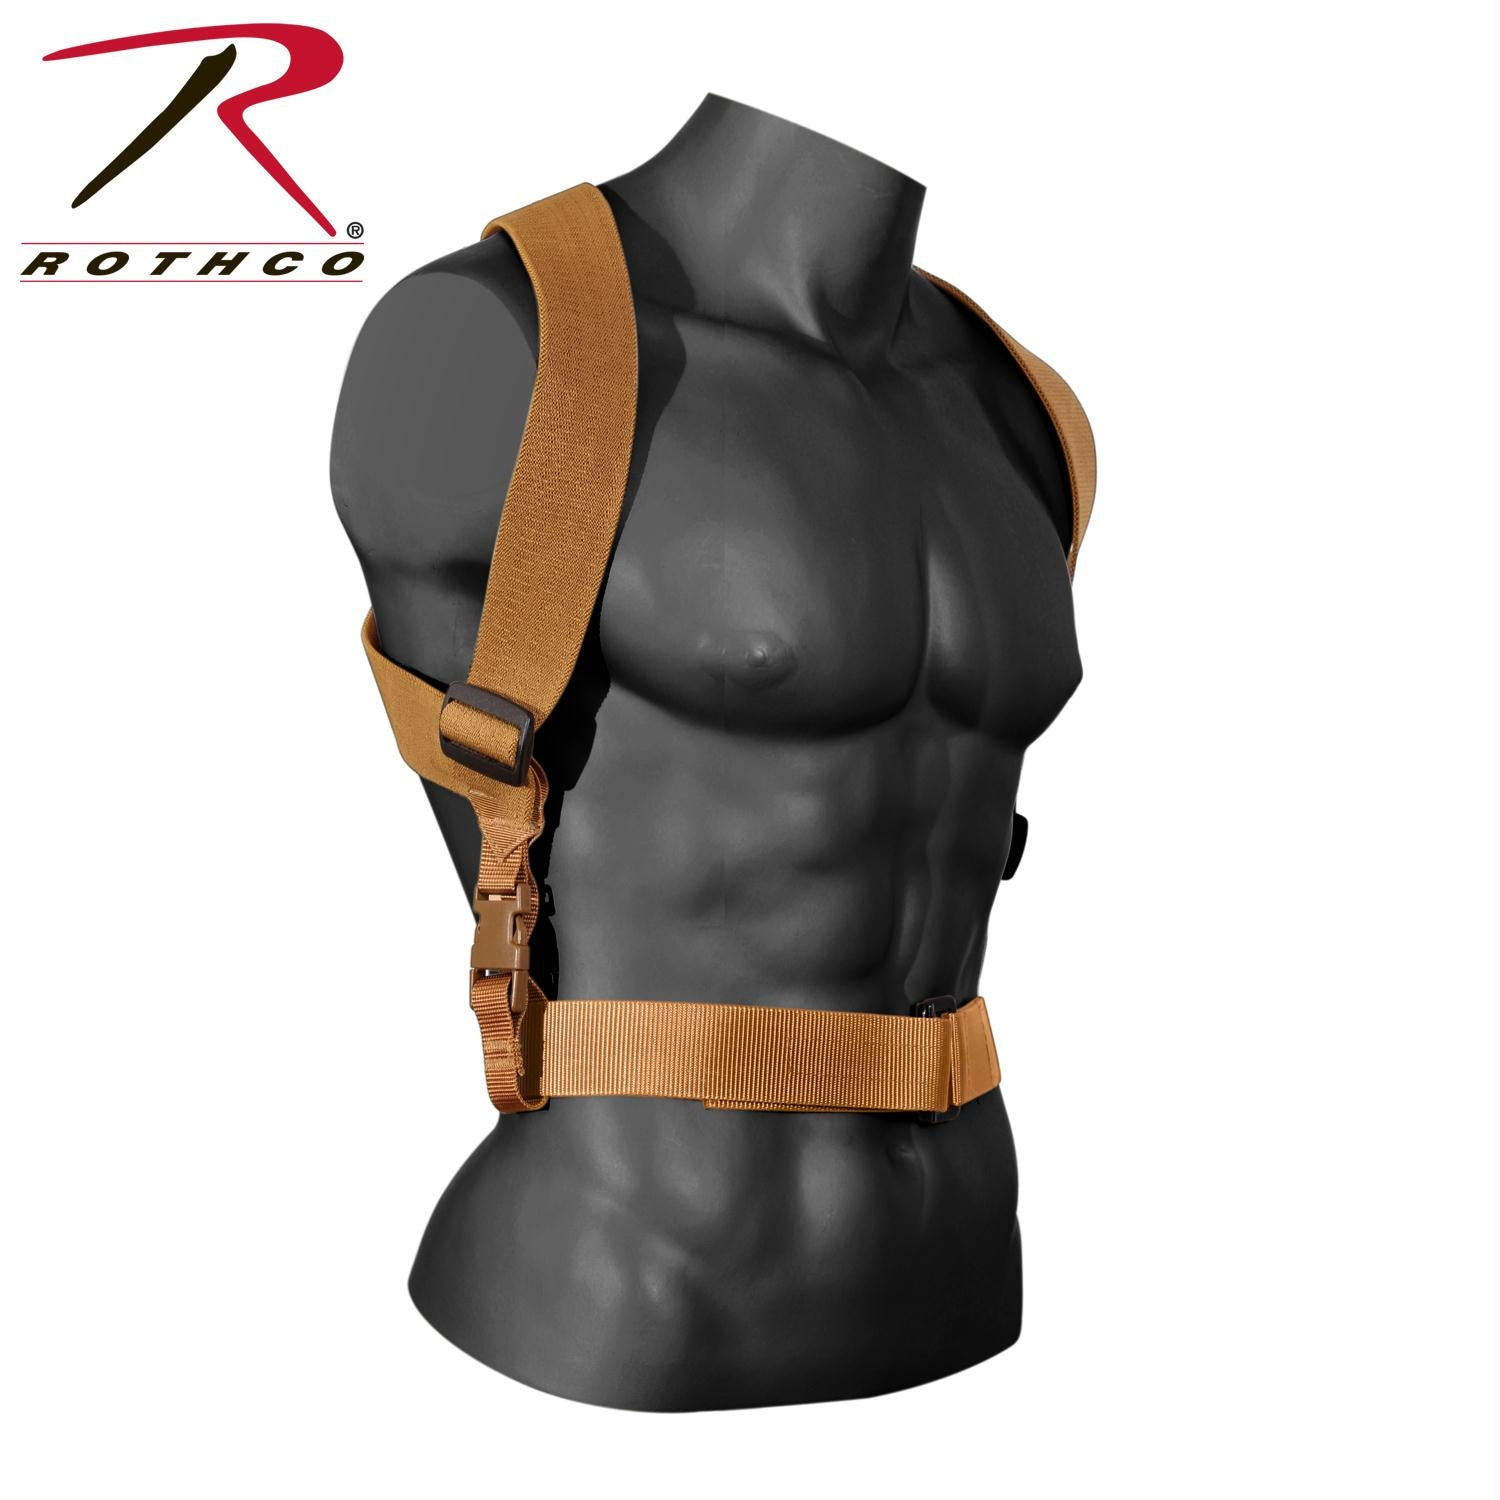 Rothco Combat Suspenders - Coyote Brown